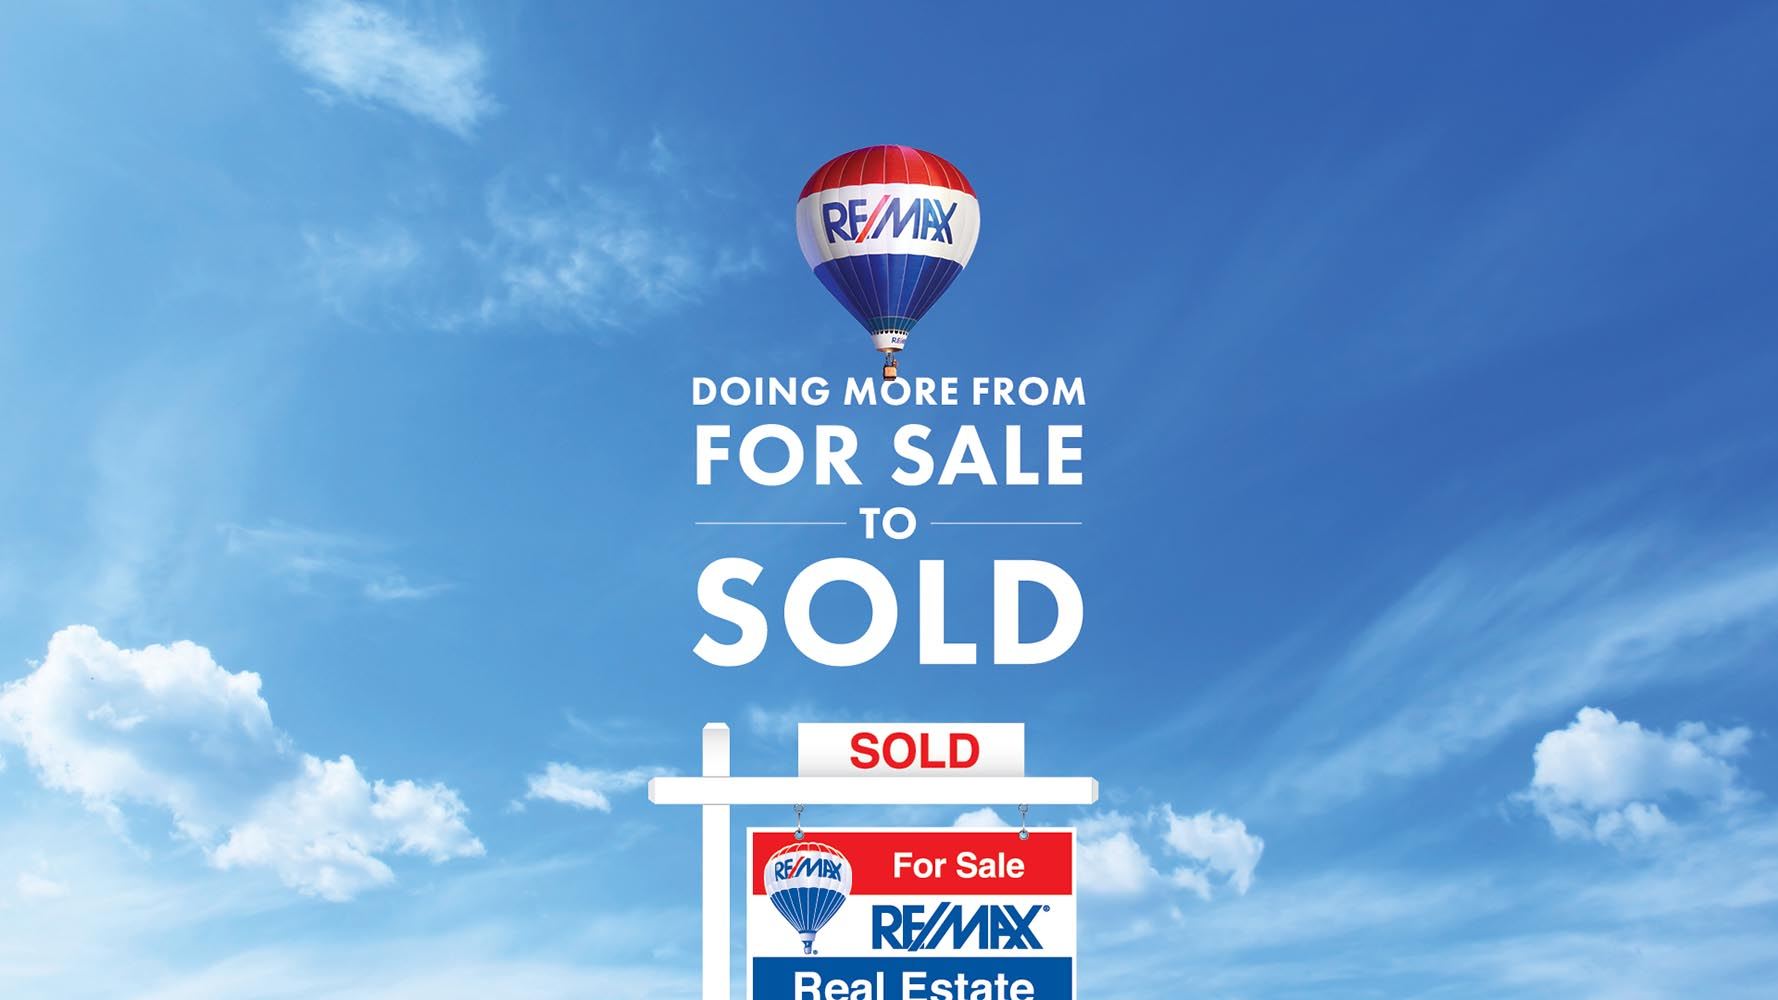 Re/Max Real Estate - Lethbridge (Coaldale)